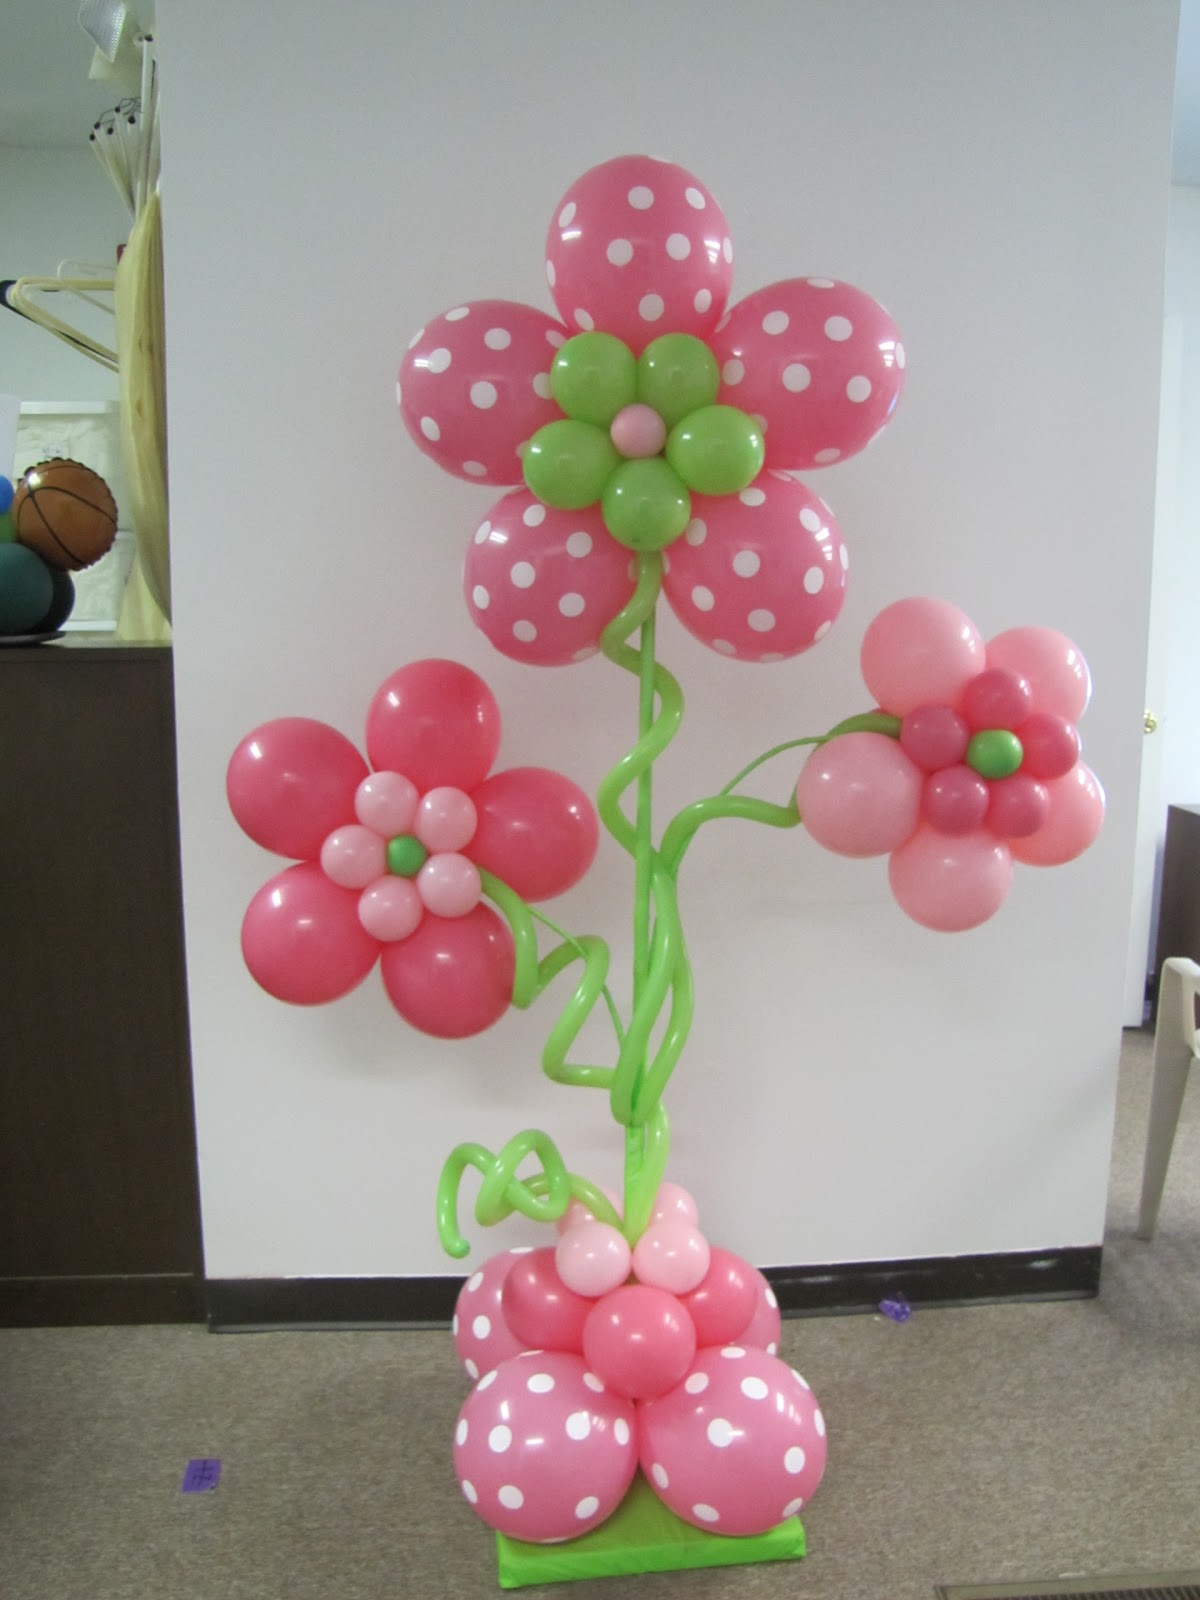 Design classic interior 2012 como decorar un baby shower - Globos para decorar ...